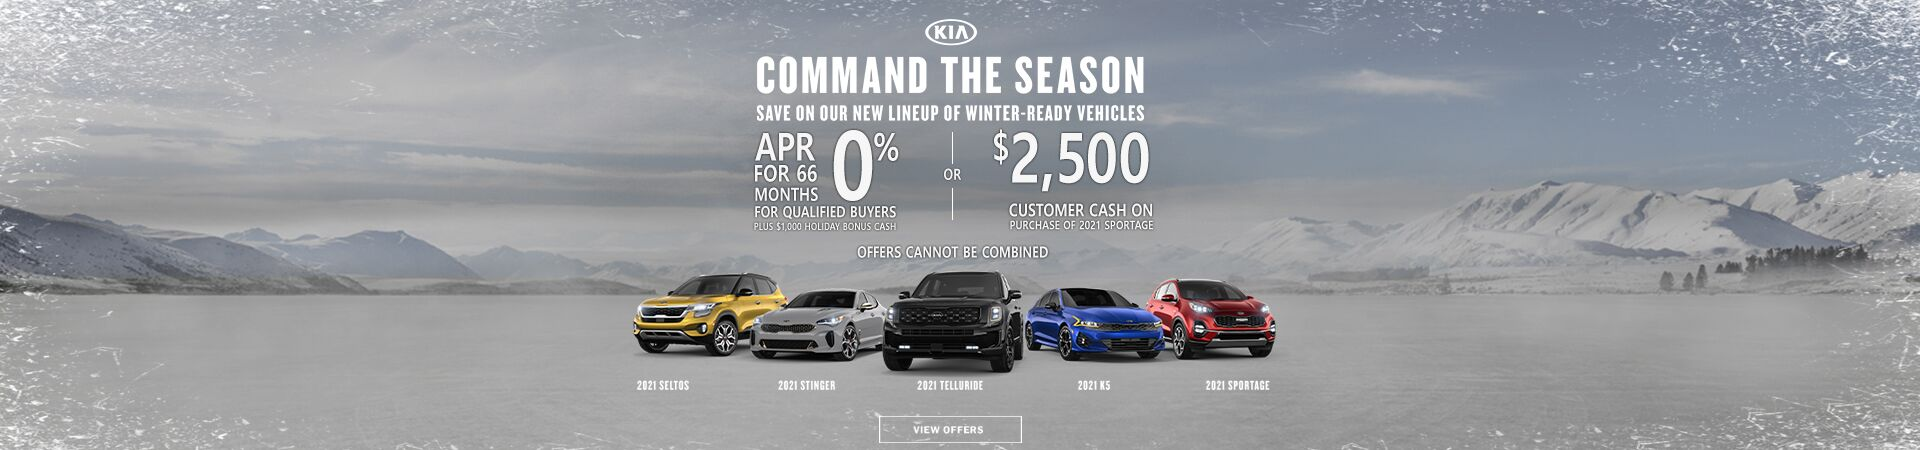 Kia Command the Season